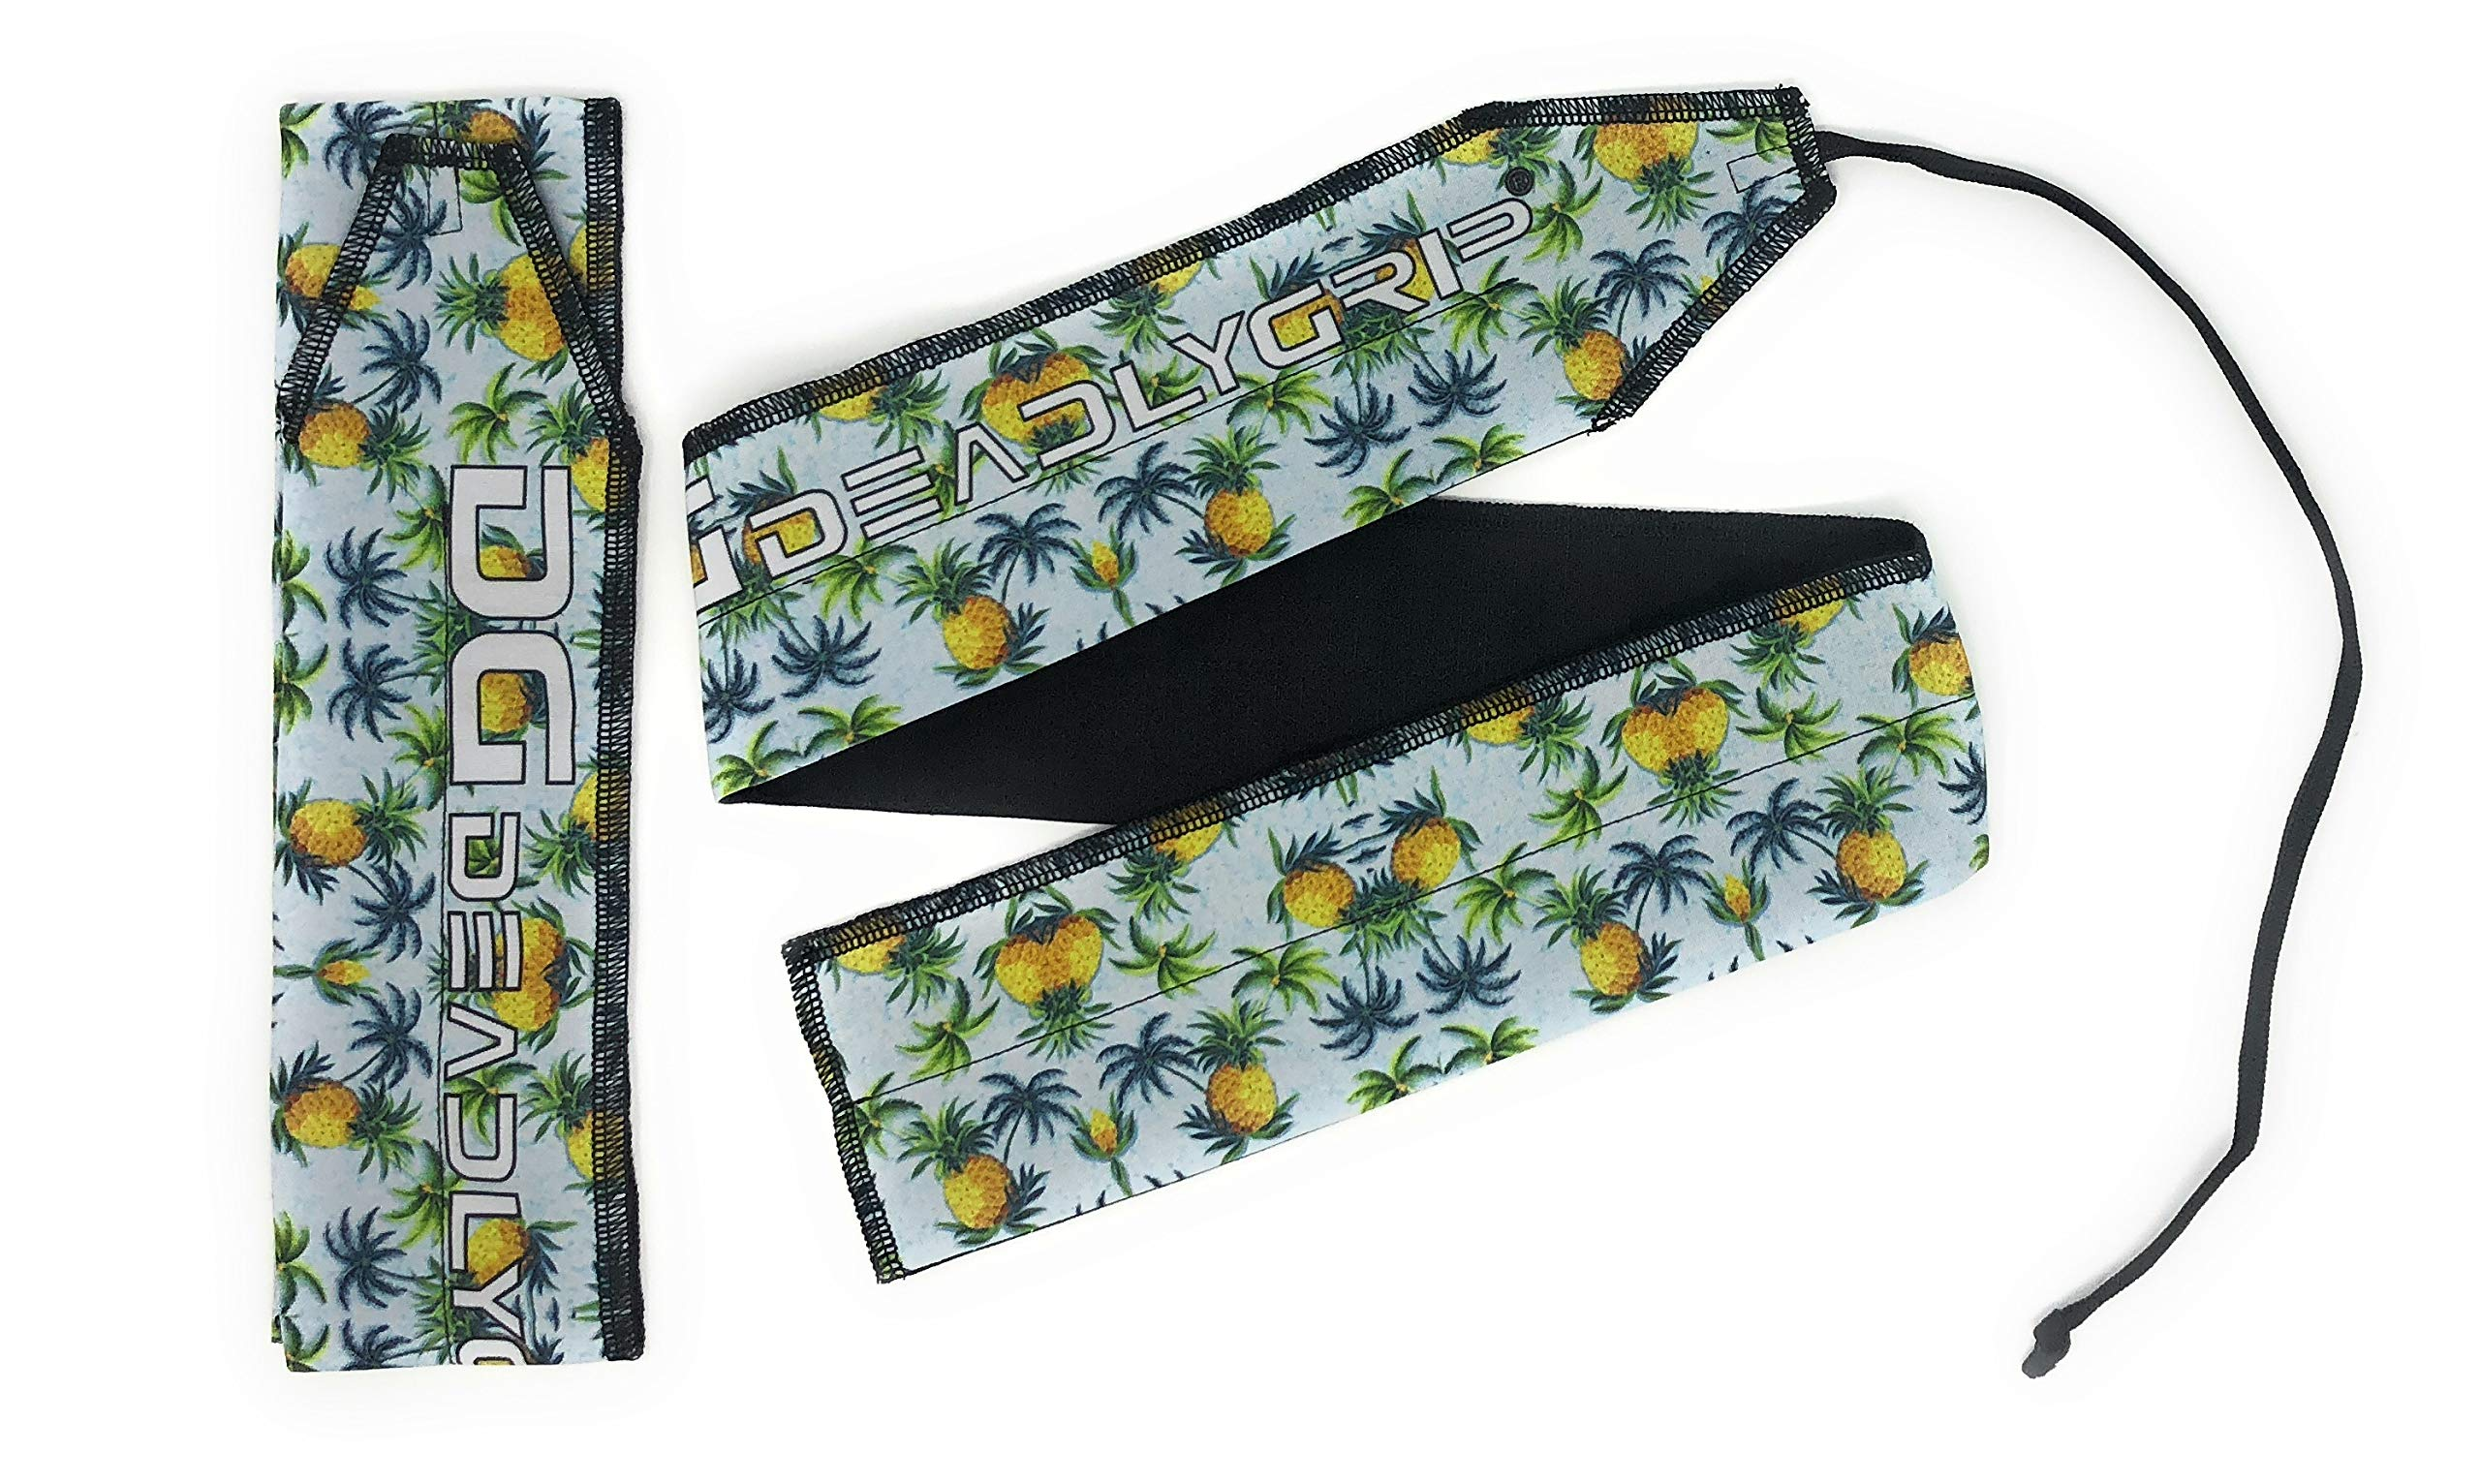 Deadly Grip DG Wrist Wrap. for Maximum Wrist Support Special for Crossfit, Power Lifting, Calisthenics and More. (Ananas)